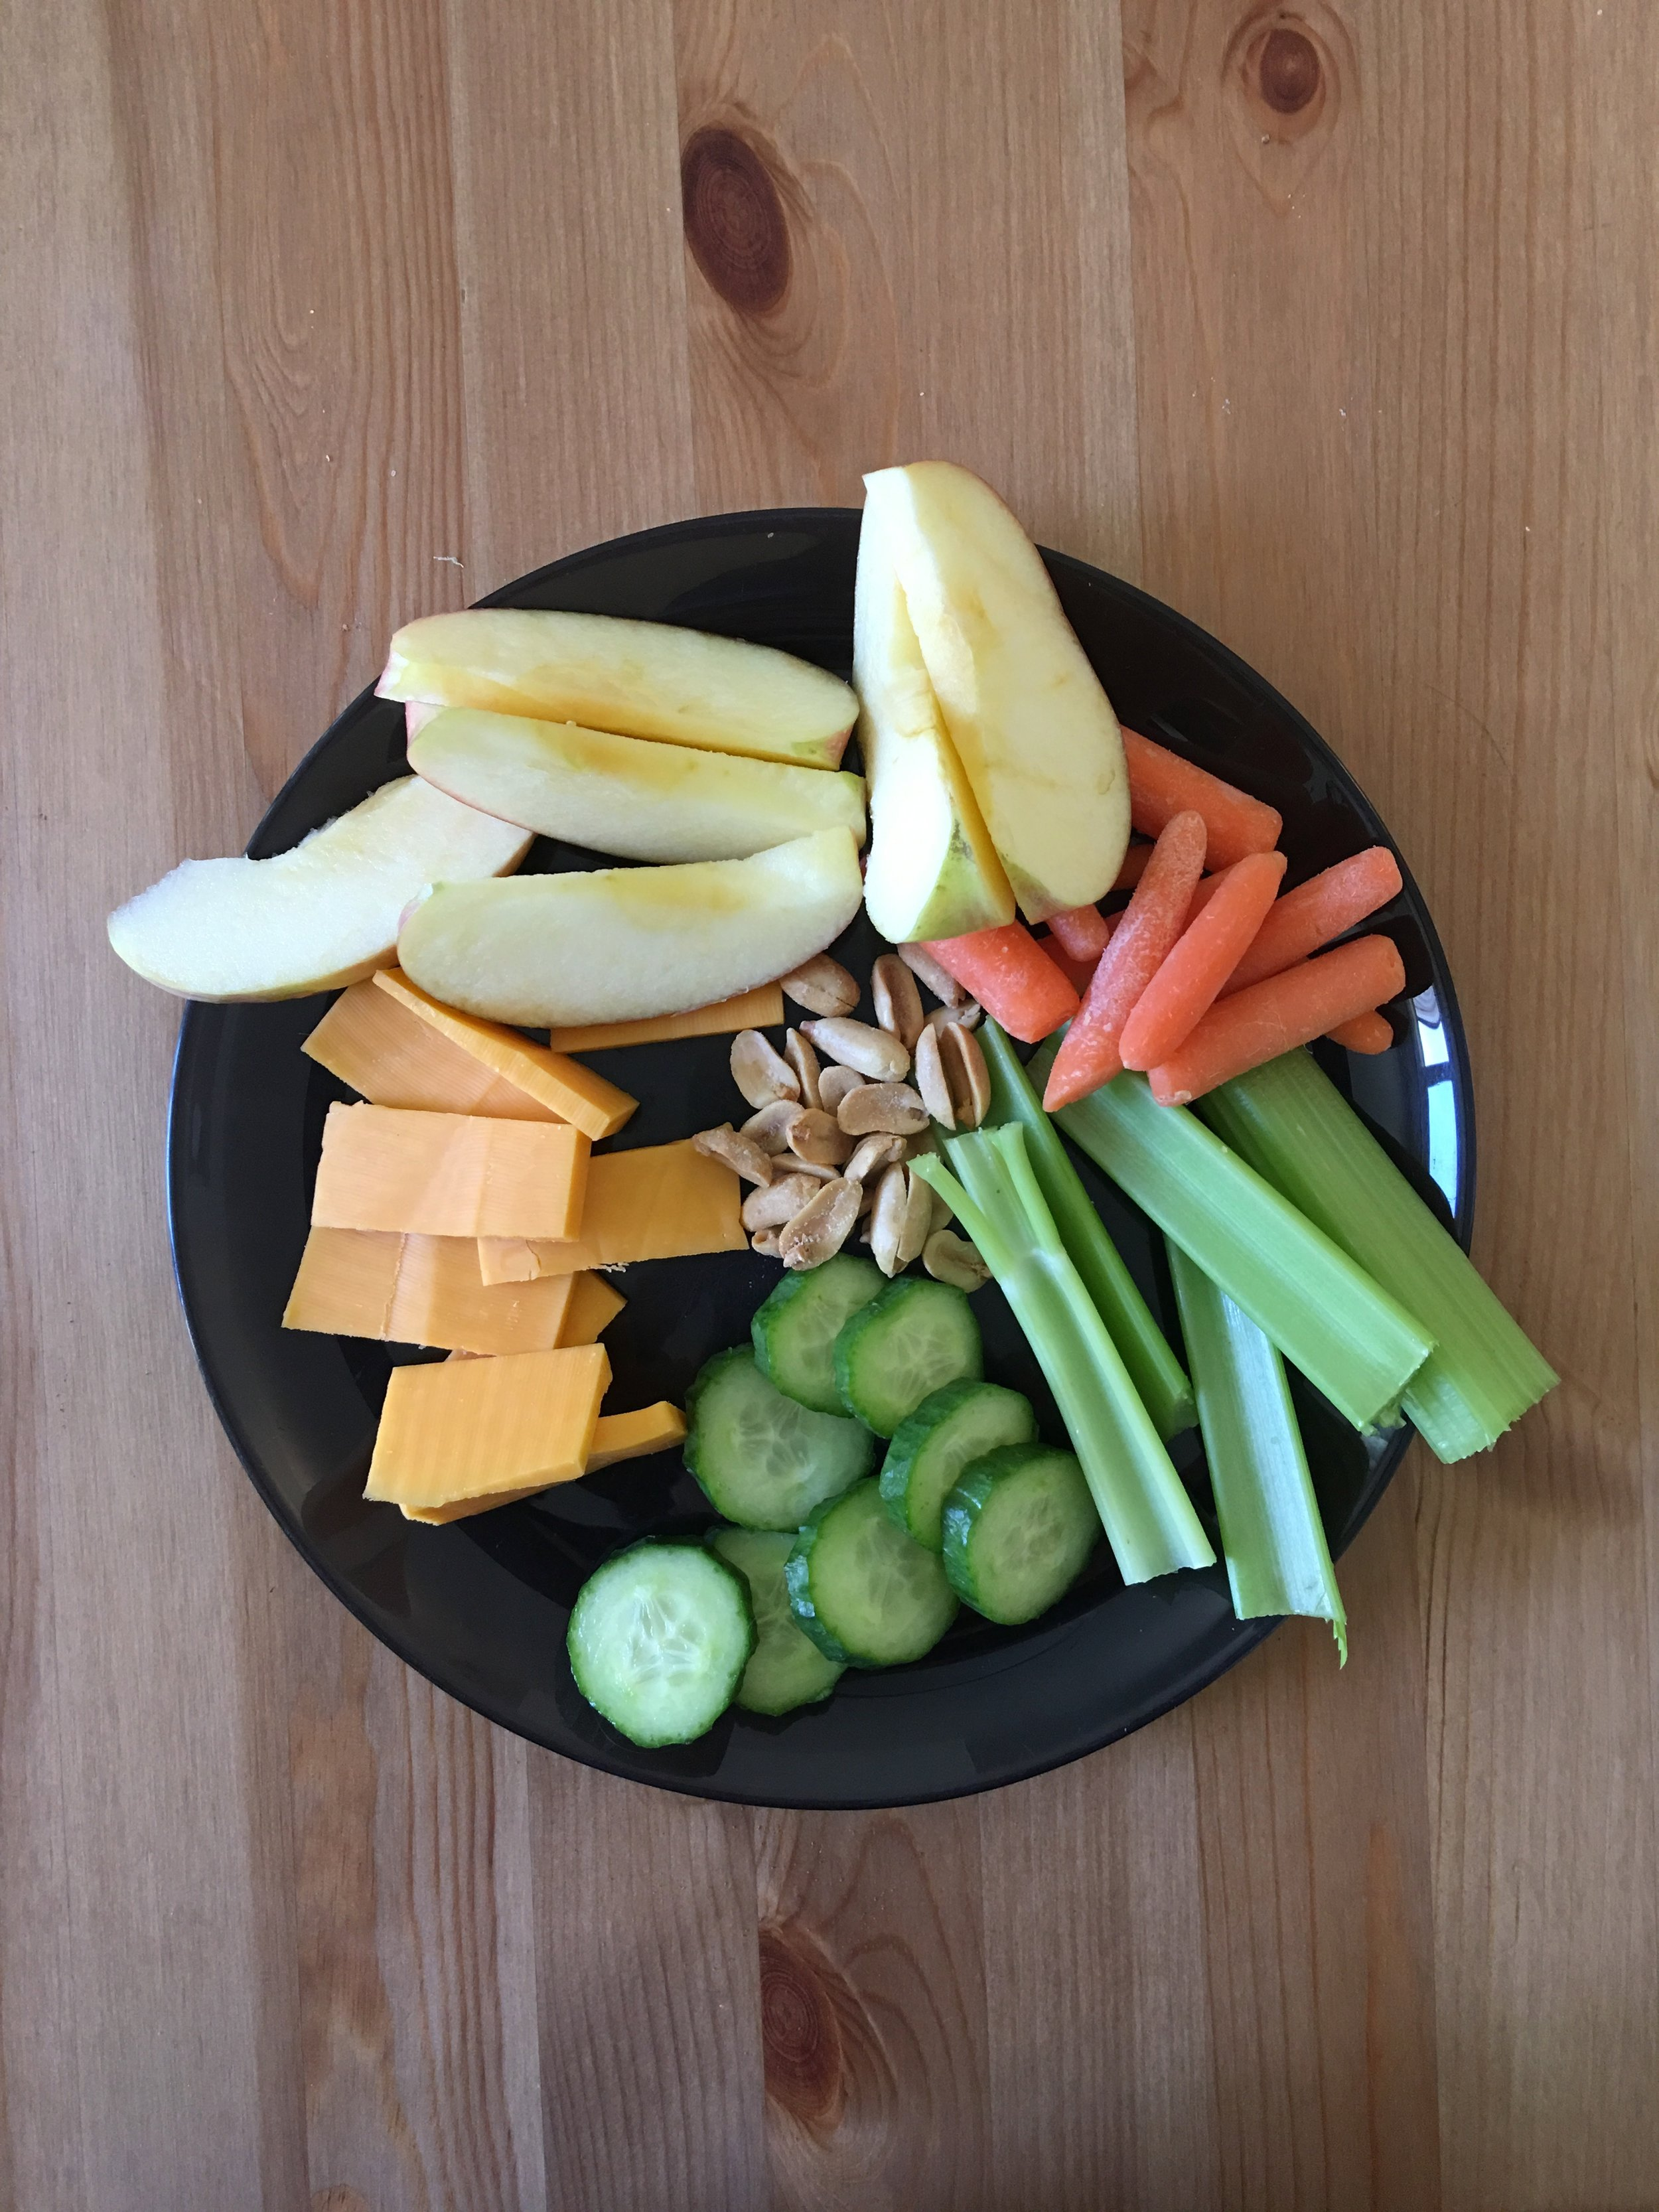 PROTEIN: 2 OZ CHEDDAR CHEESE / FRUIT: 6 OZ APPLE / VEGGIE: 6 OZ CELERY, CARROTS, CUCUMBERS / FAT: 0.5 OZ PEANUTS